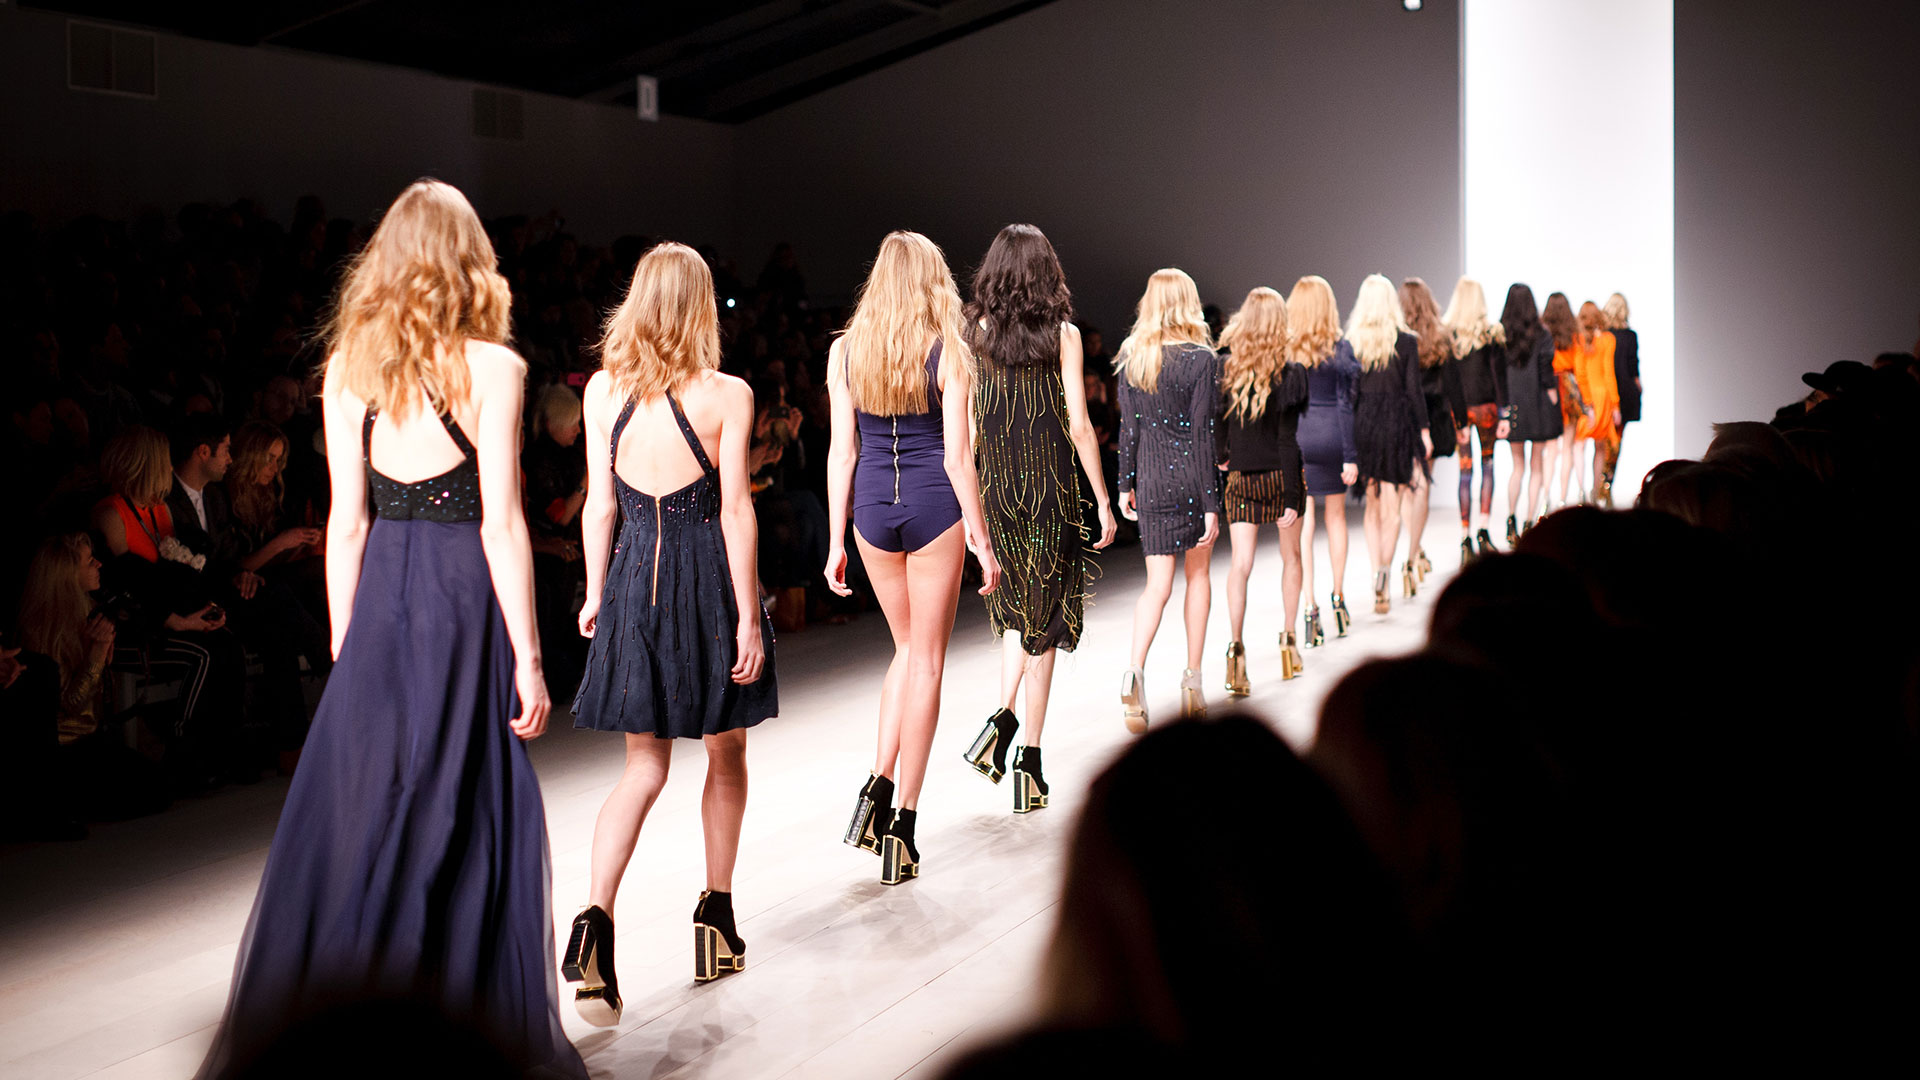 Back view of female models on catwalk